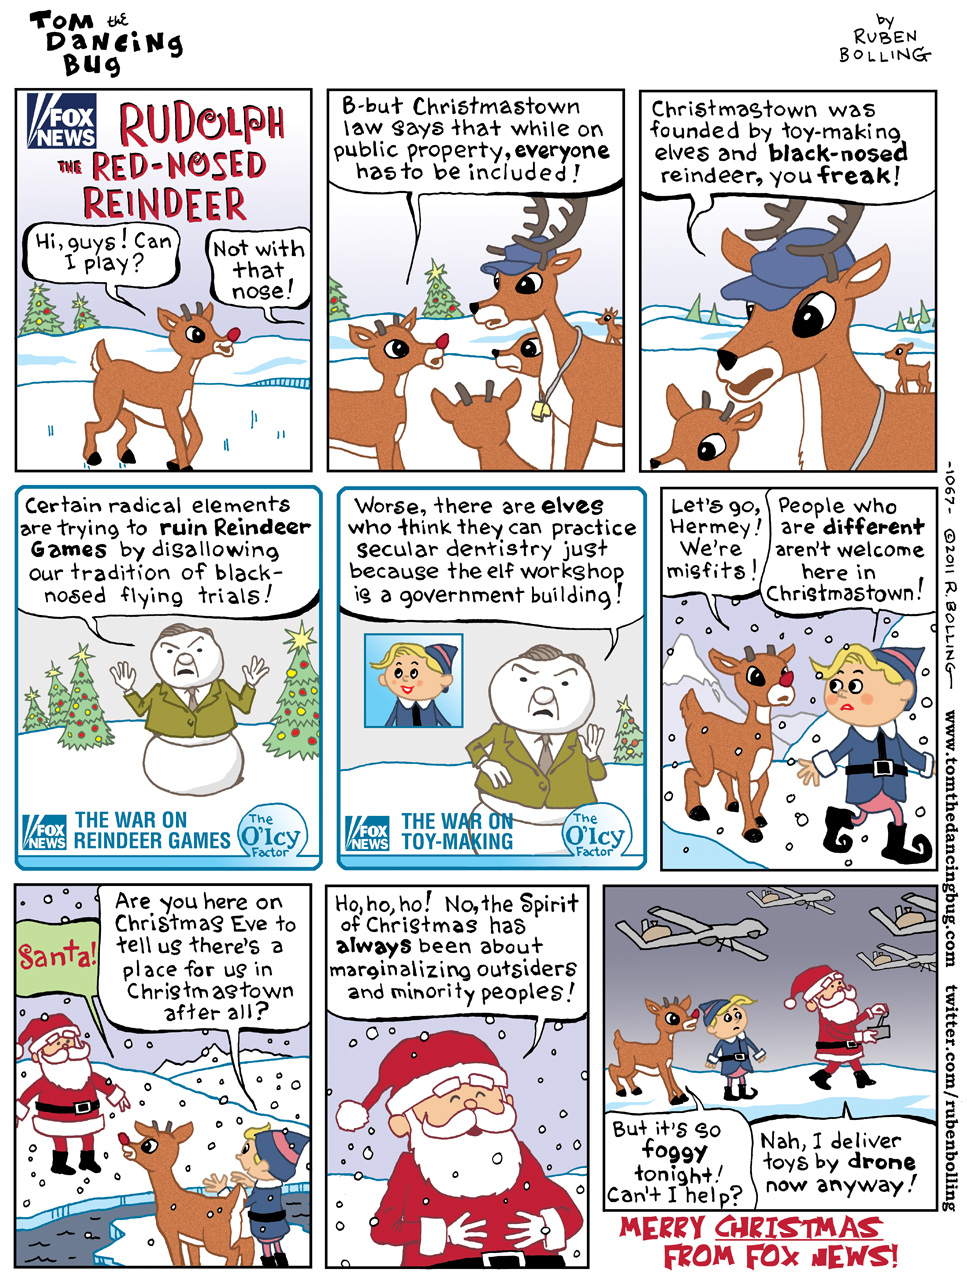 TOM THE DANCING BUG: Fox News on Rudolph the Red-Nosed Reindeer and ...